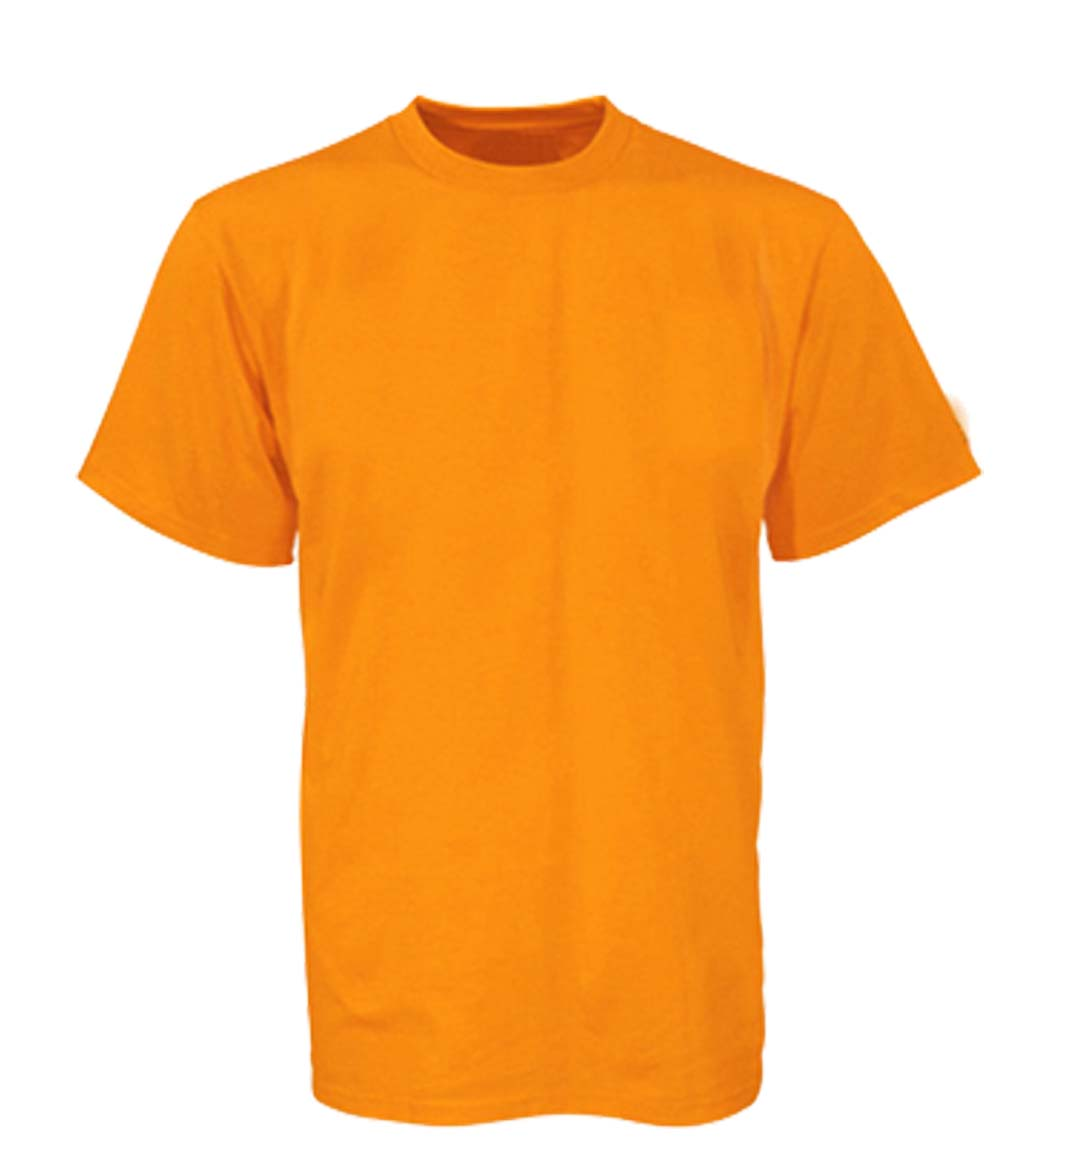 Download Free High quality Blank T Shirt Png Transparent Images